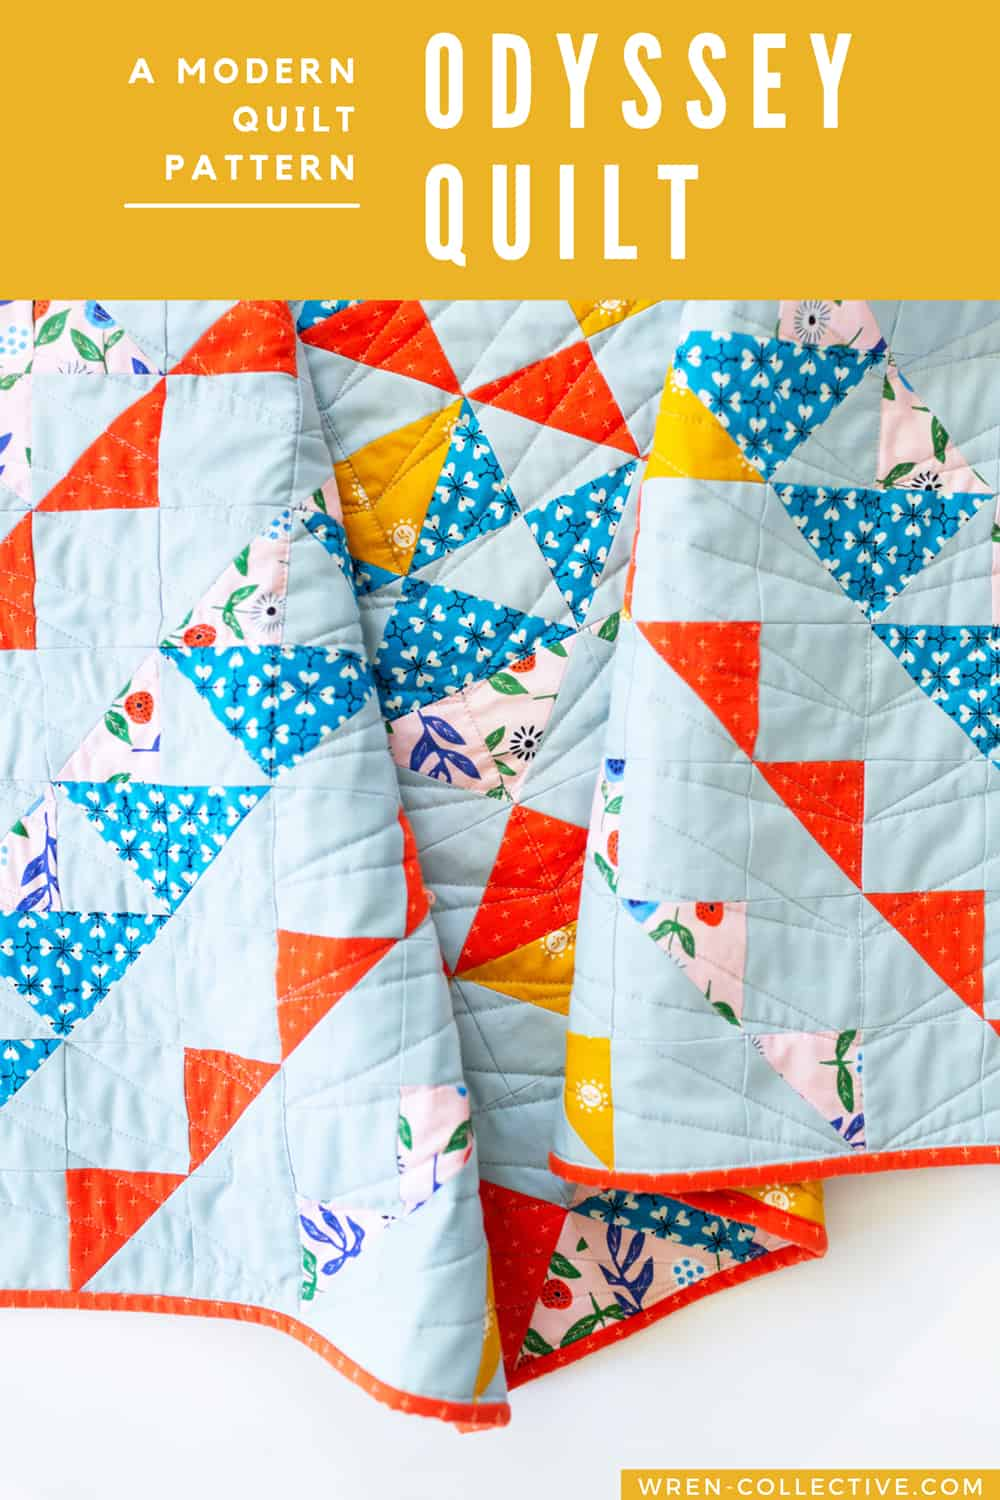 Half square triangle quilt pattern - Odyssey Quilt from Wren Collective001